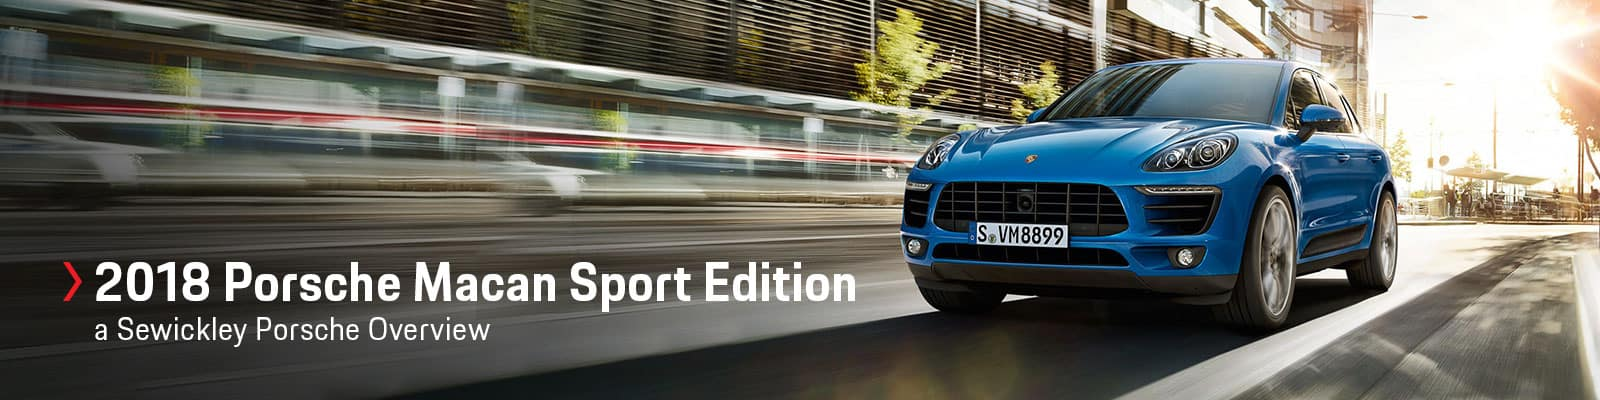 2018 Porsche Macan Sport Edition Model Overview at Sewickley Porsche